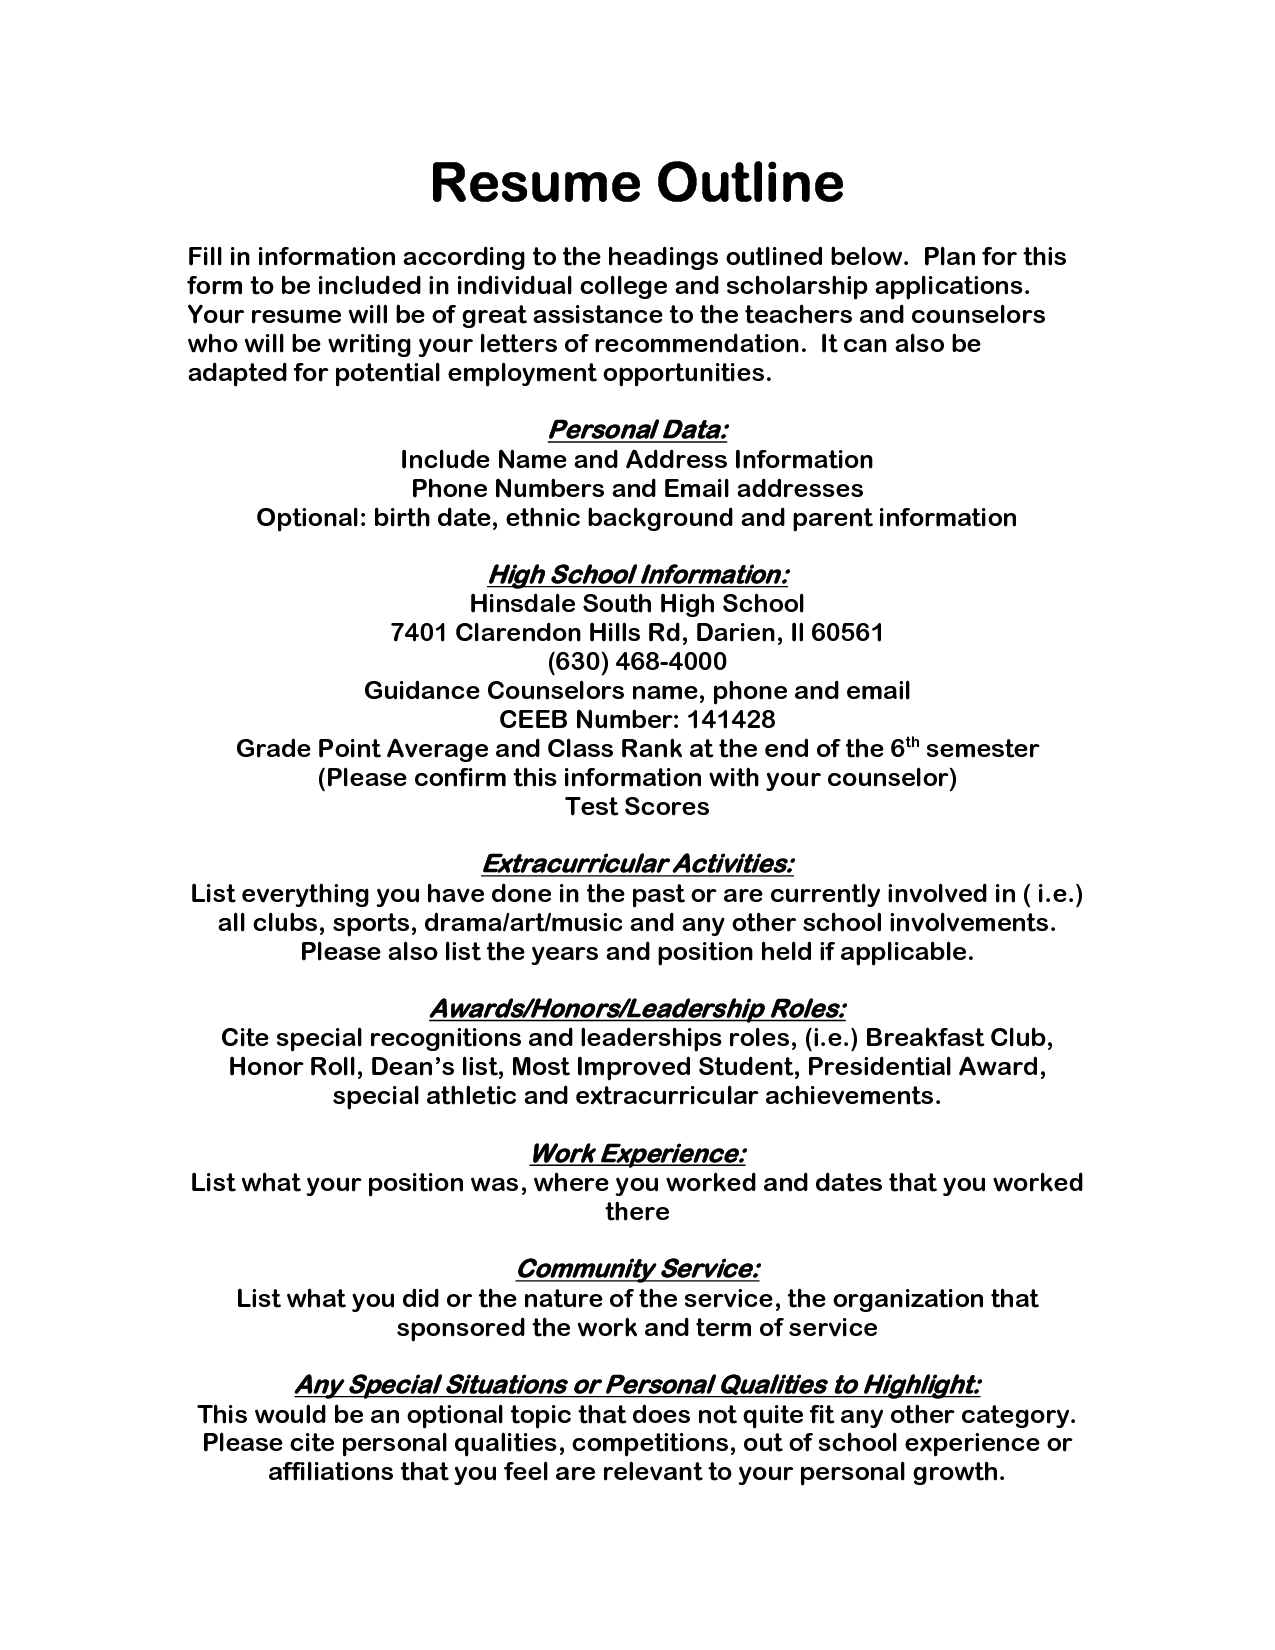 Scholarship Resume Template How Build Strong Resume Great Example Edgar Sample Header Medical